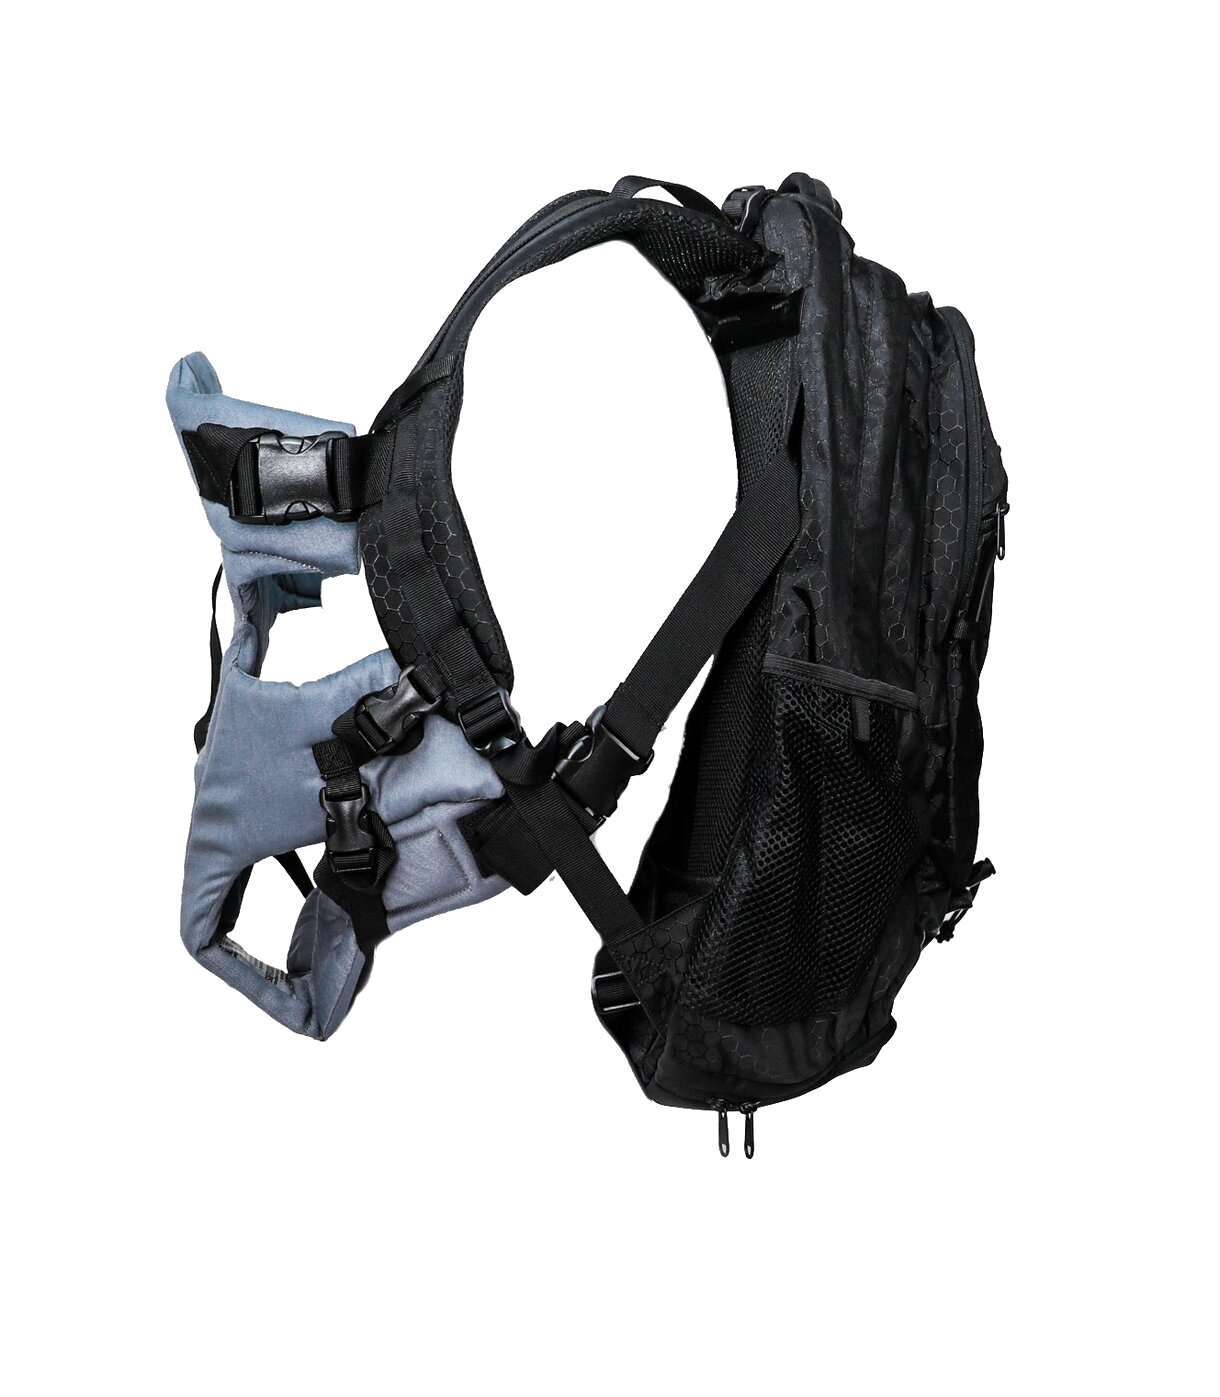 CoPilot CarrierPak - Baby Carrier, Parenting Bag and Day Pack - Black